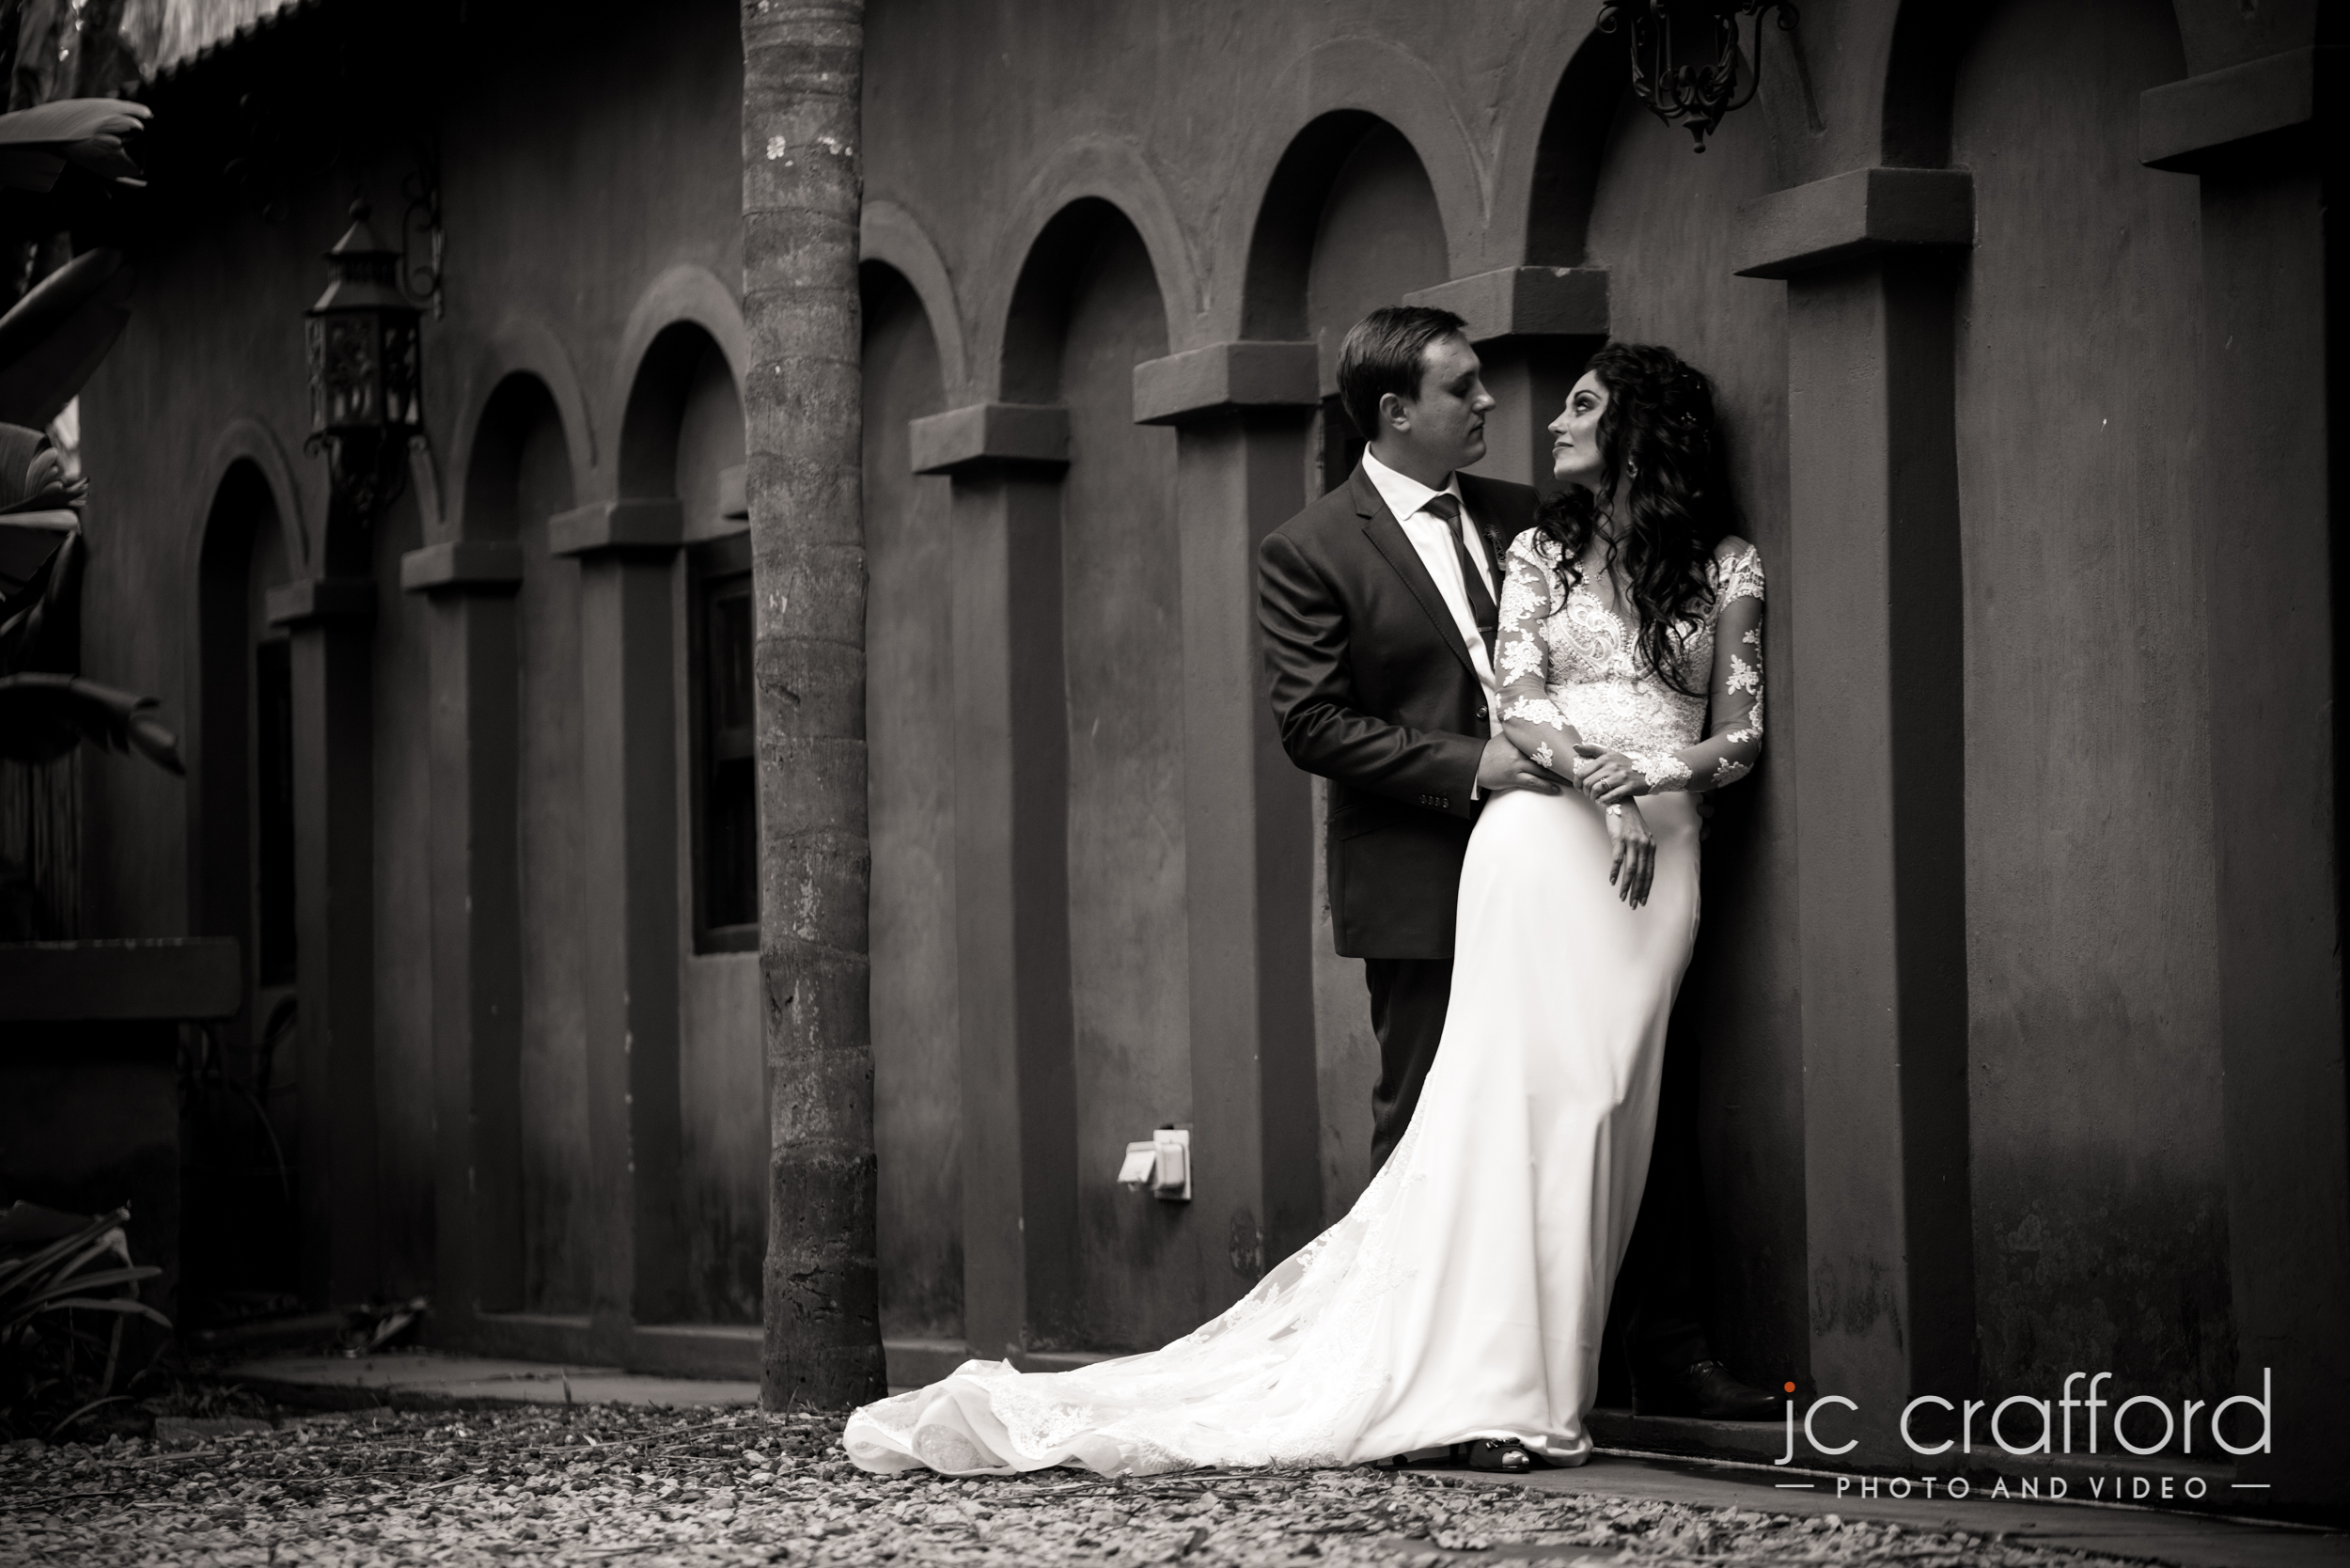 JC Crafford Photo and Video wedding photography at L'Aquila in Pretoria MS